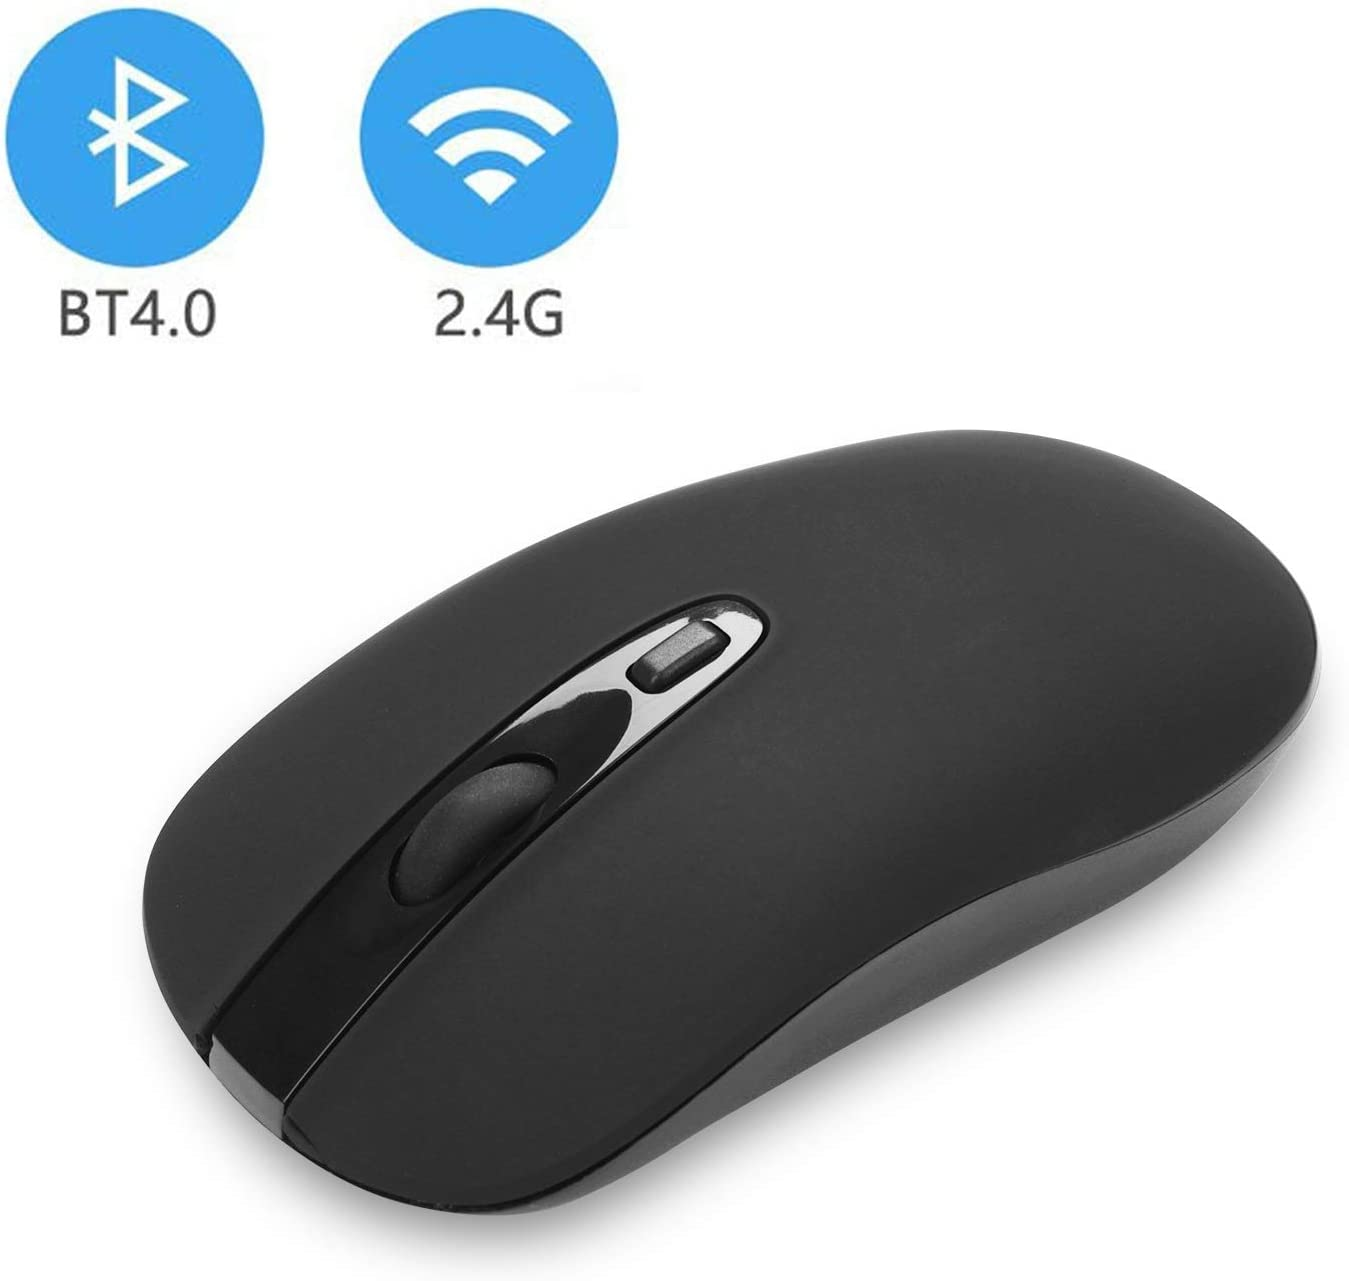 cimetech Wireless Bluetooth Mouse with Nano Receiver, Less Noise and Mute Silent Click, Portable Mobile Optical Mice for Notebook, PC, Laptop, Computer, MacBook